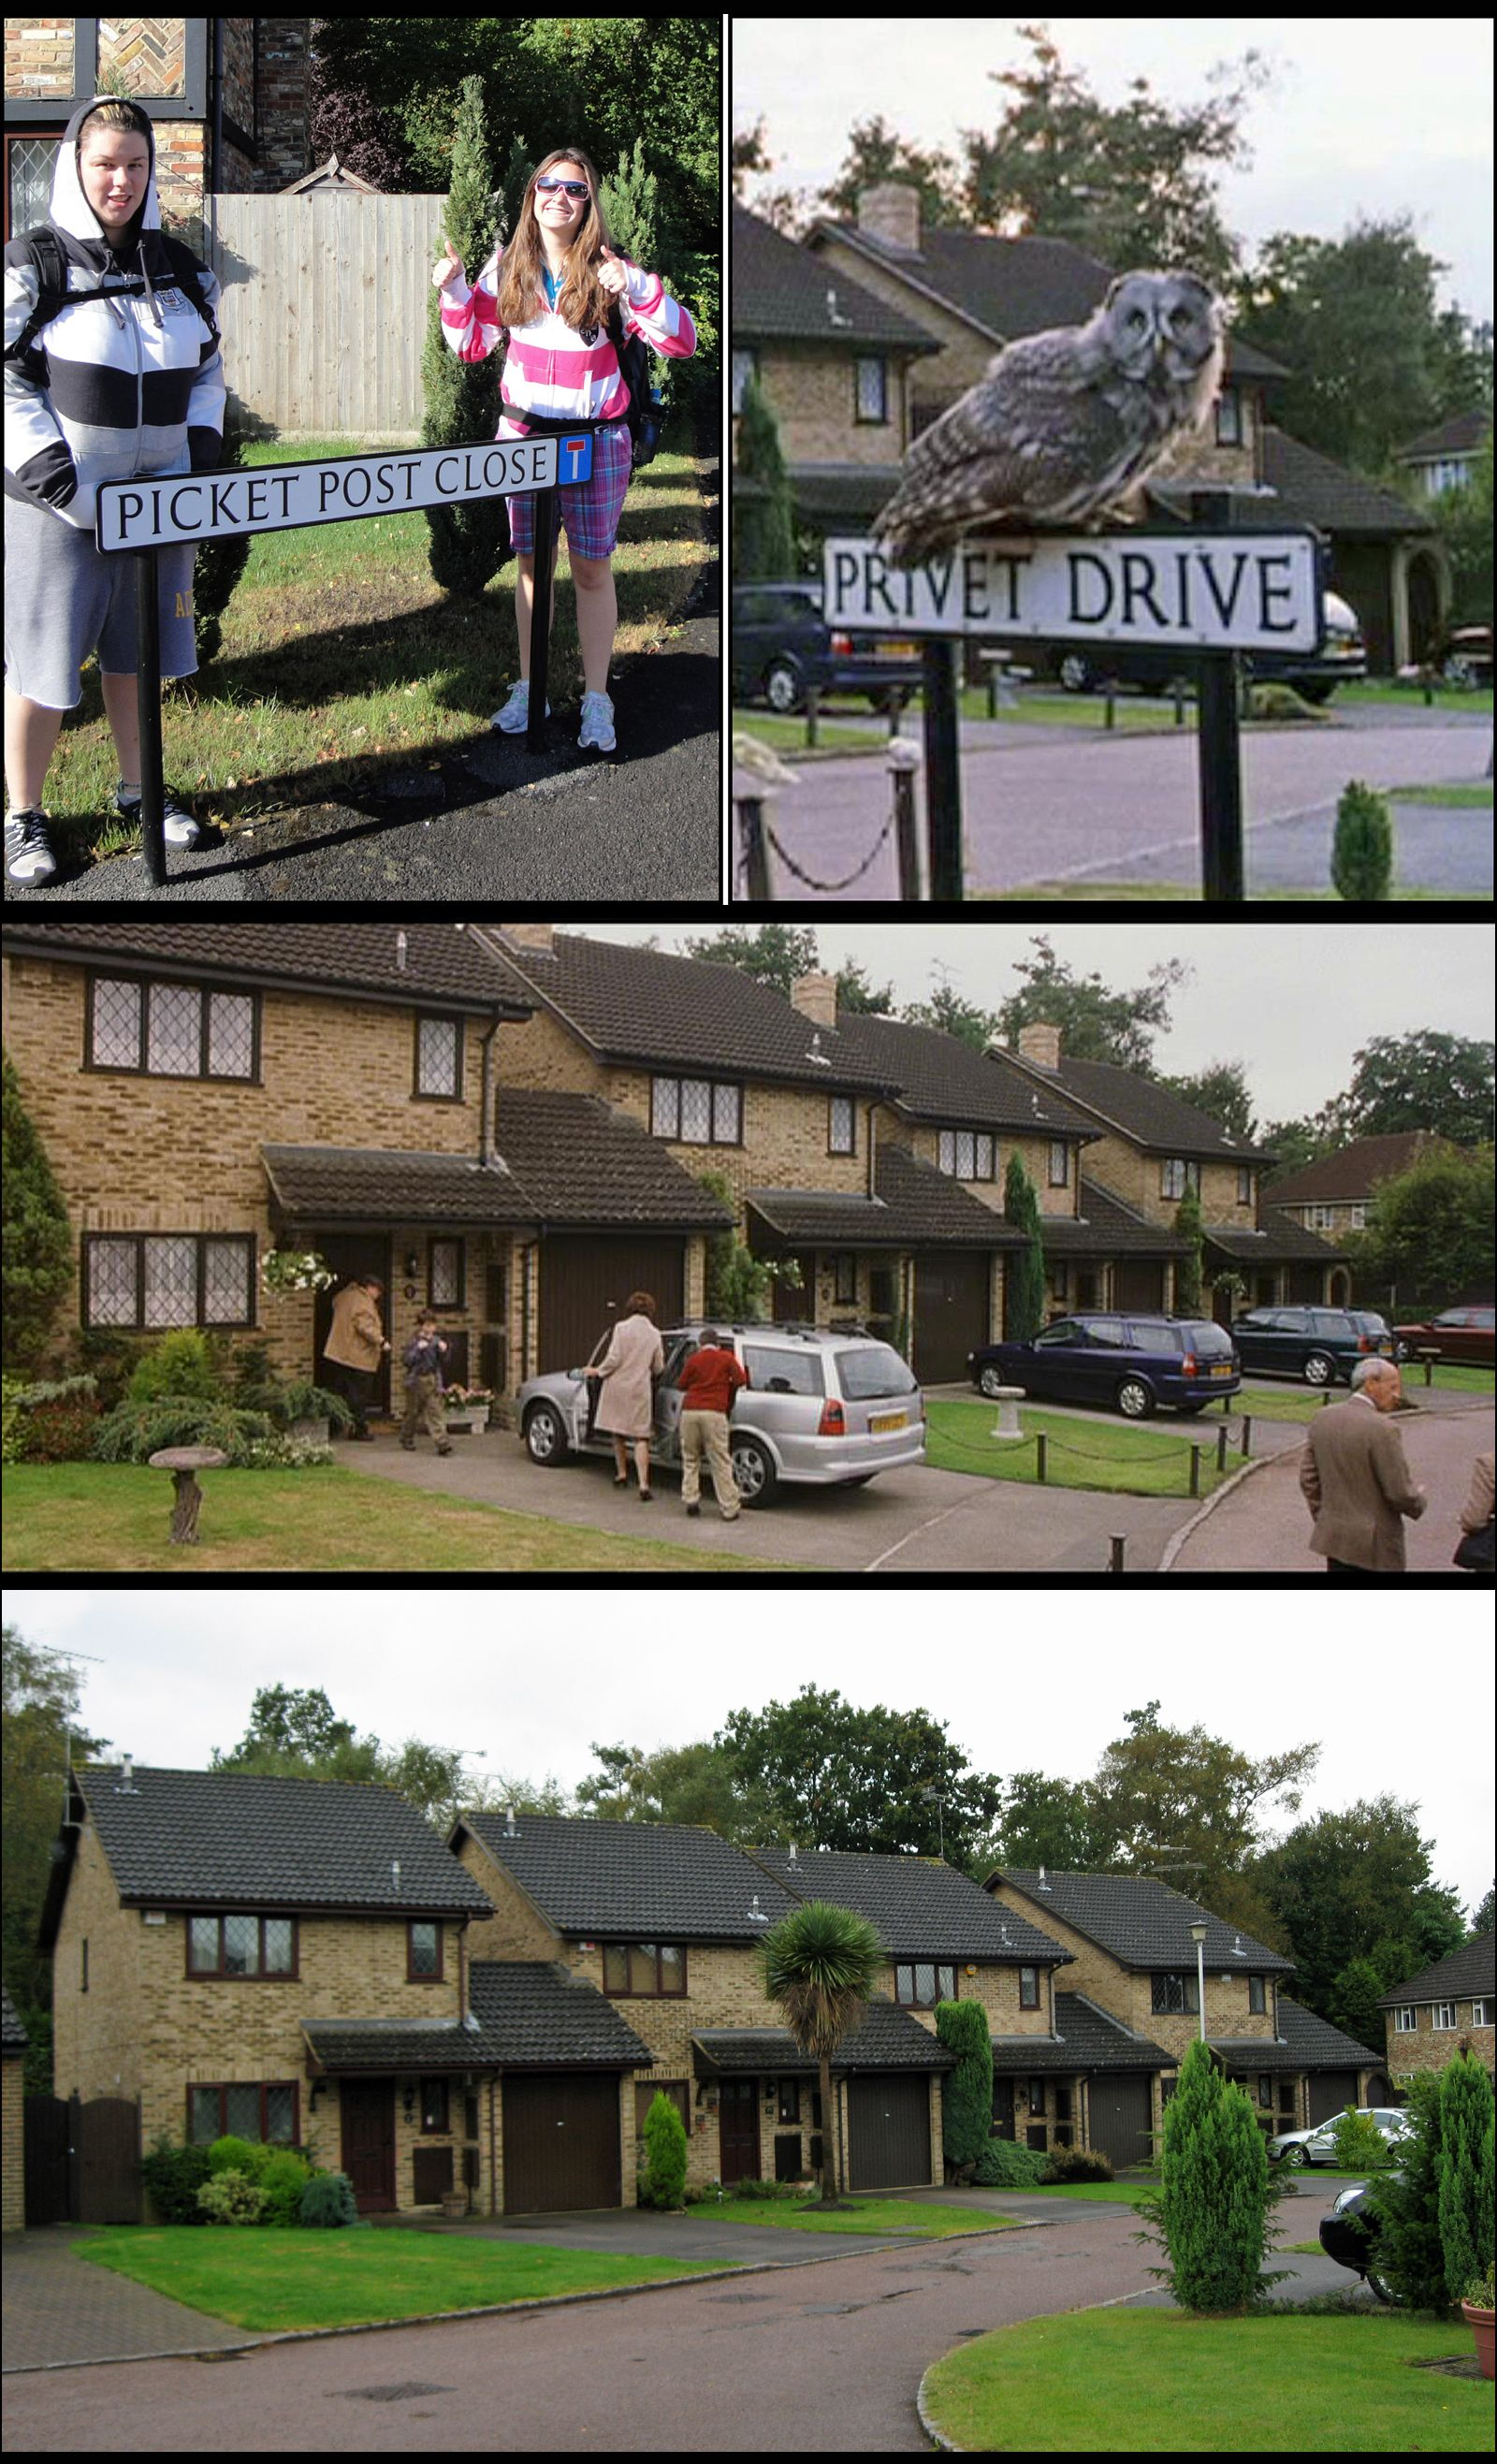 The Dursley S Number 4 Privet Drive Home Was Originally Filmed At Number 12 Picket Post Close In Marti Harry Potter Places Dream Vacations Study Abroad England